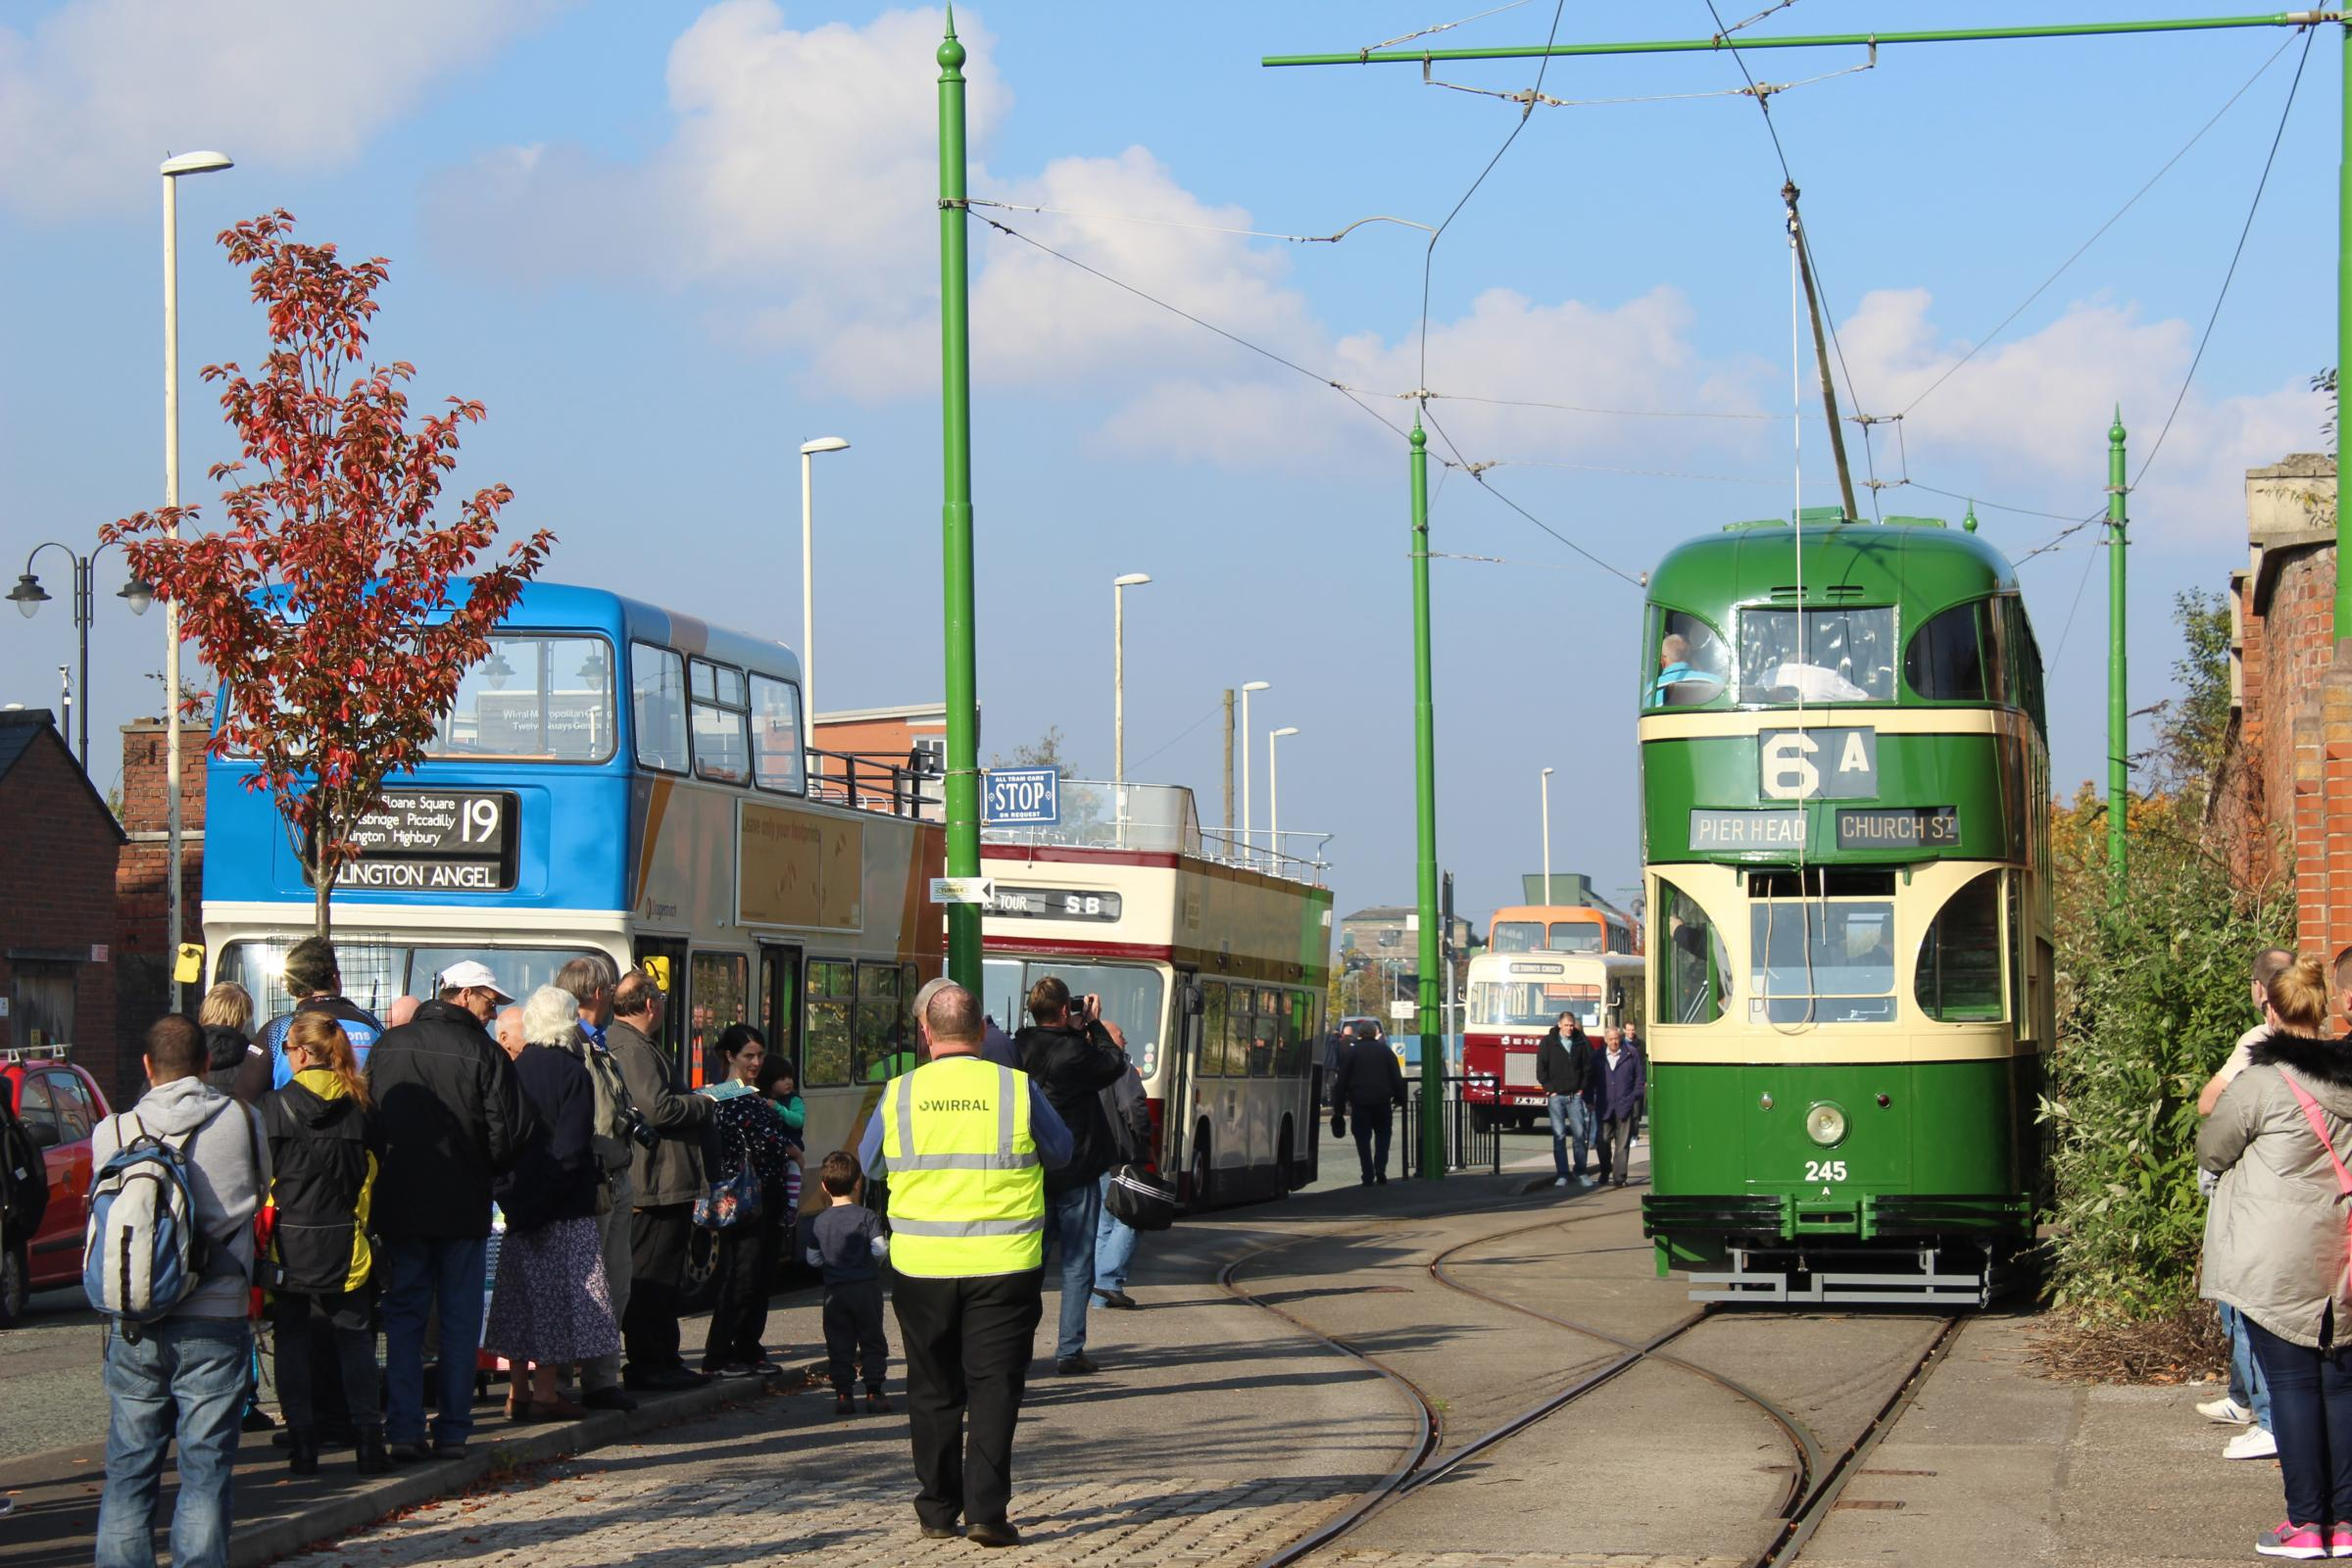 Wirral Bus & Tram Show